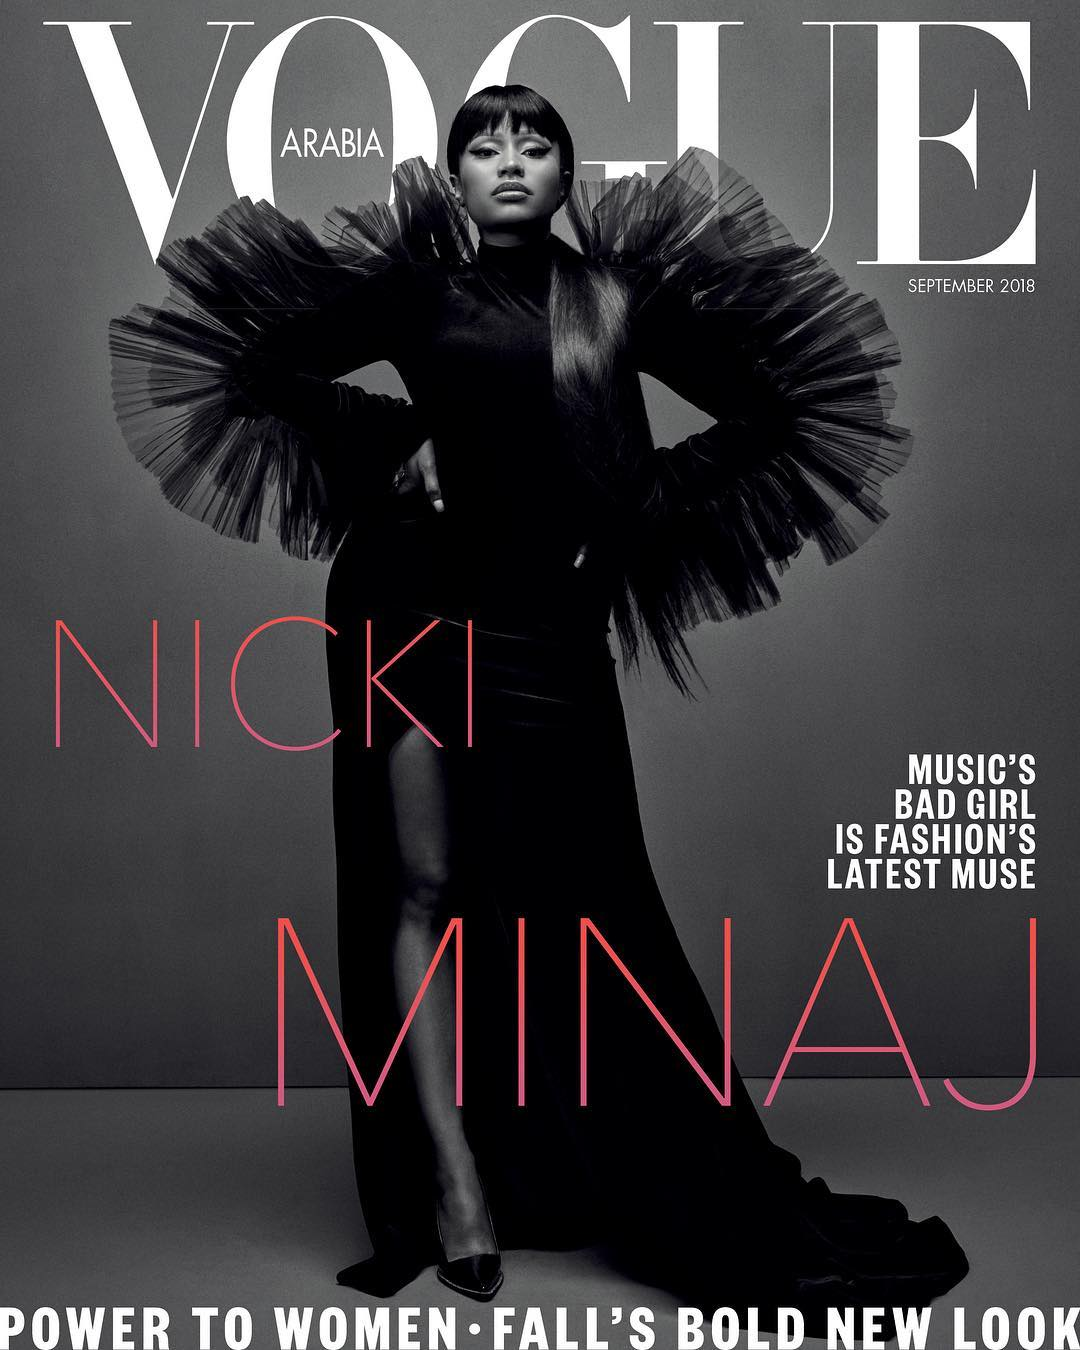 Nicki Minaj covers Vogue Arabia September 2018 issue